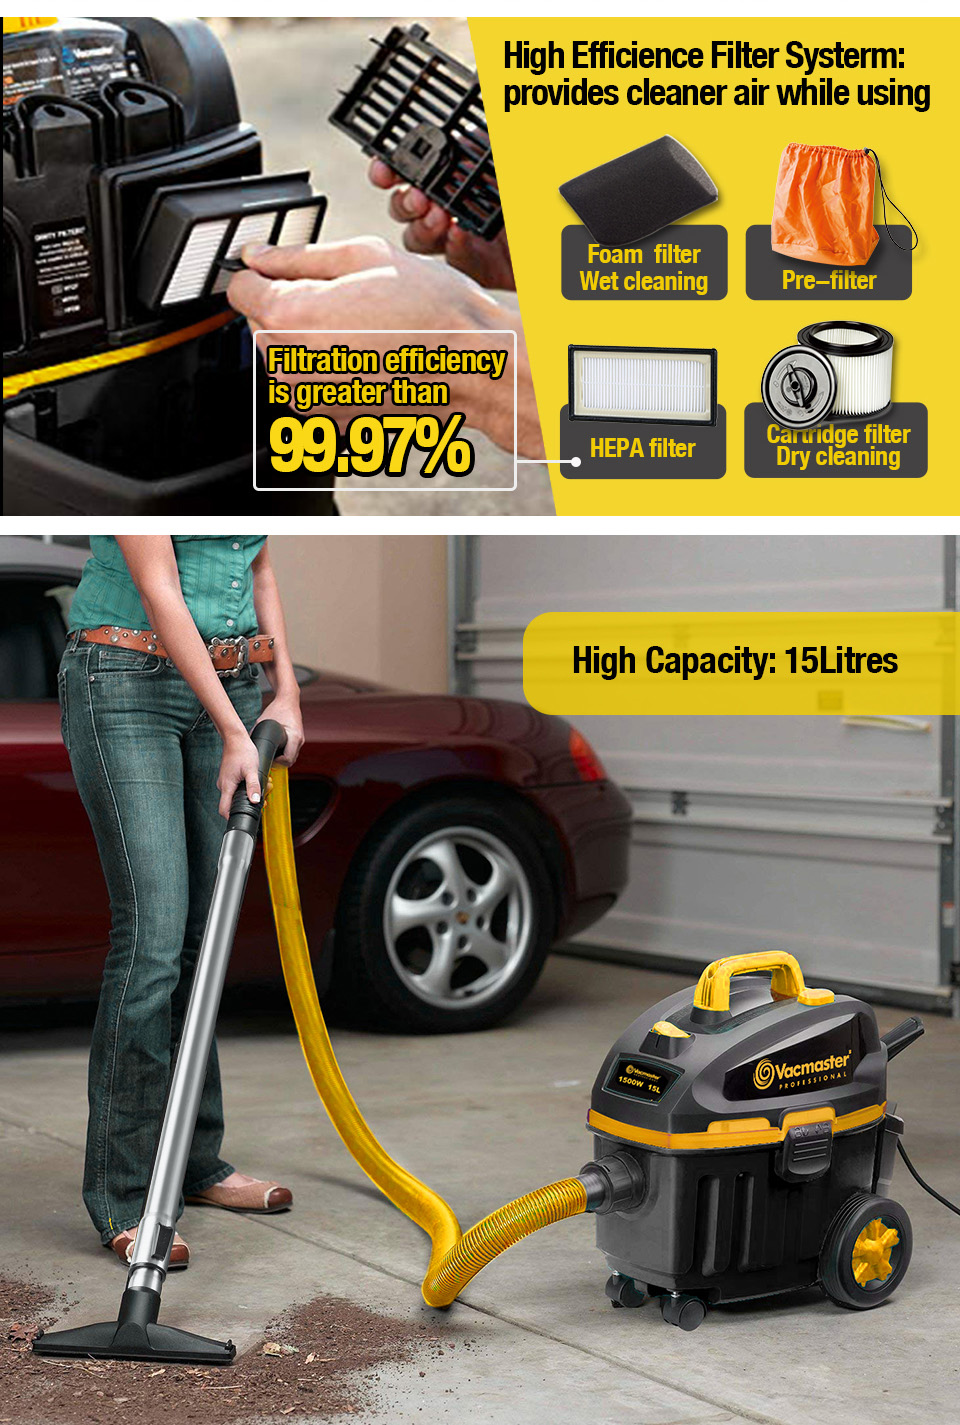 Vacmaster 2020 aspiradoras 1500W 15L bagged auto cord rewind portable household floor wet and dry car vacuum cleaner, VF1515HJ